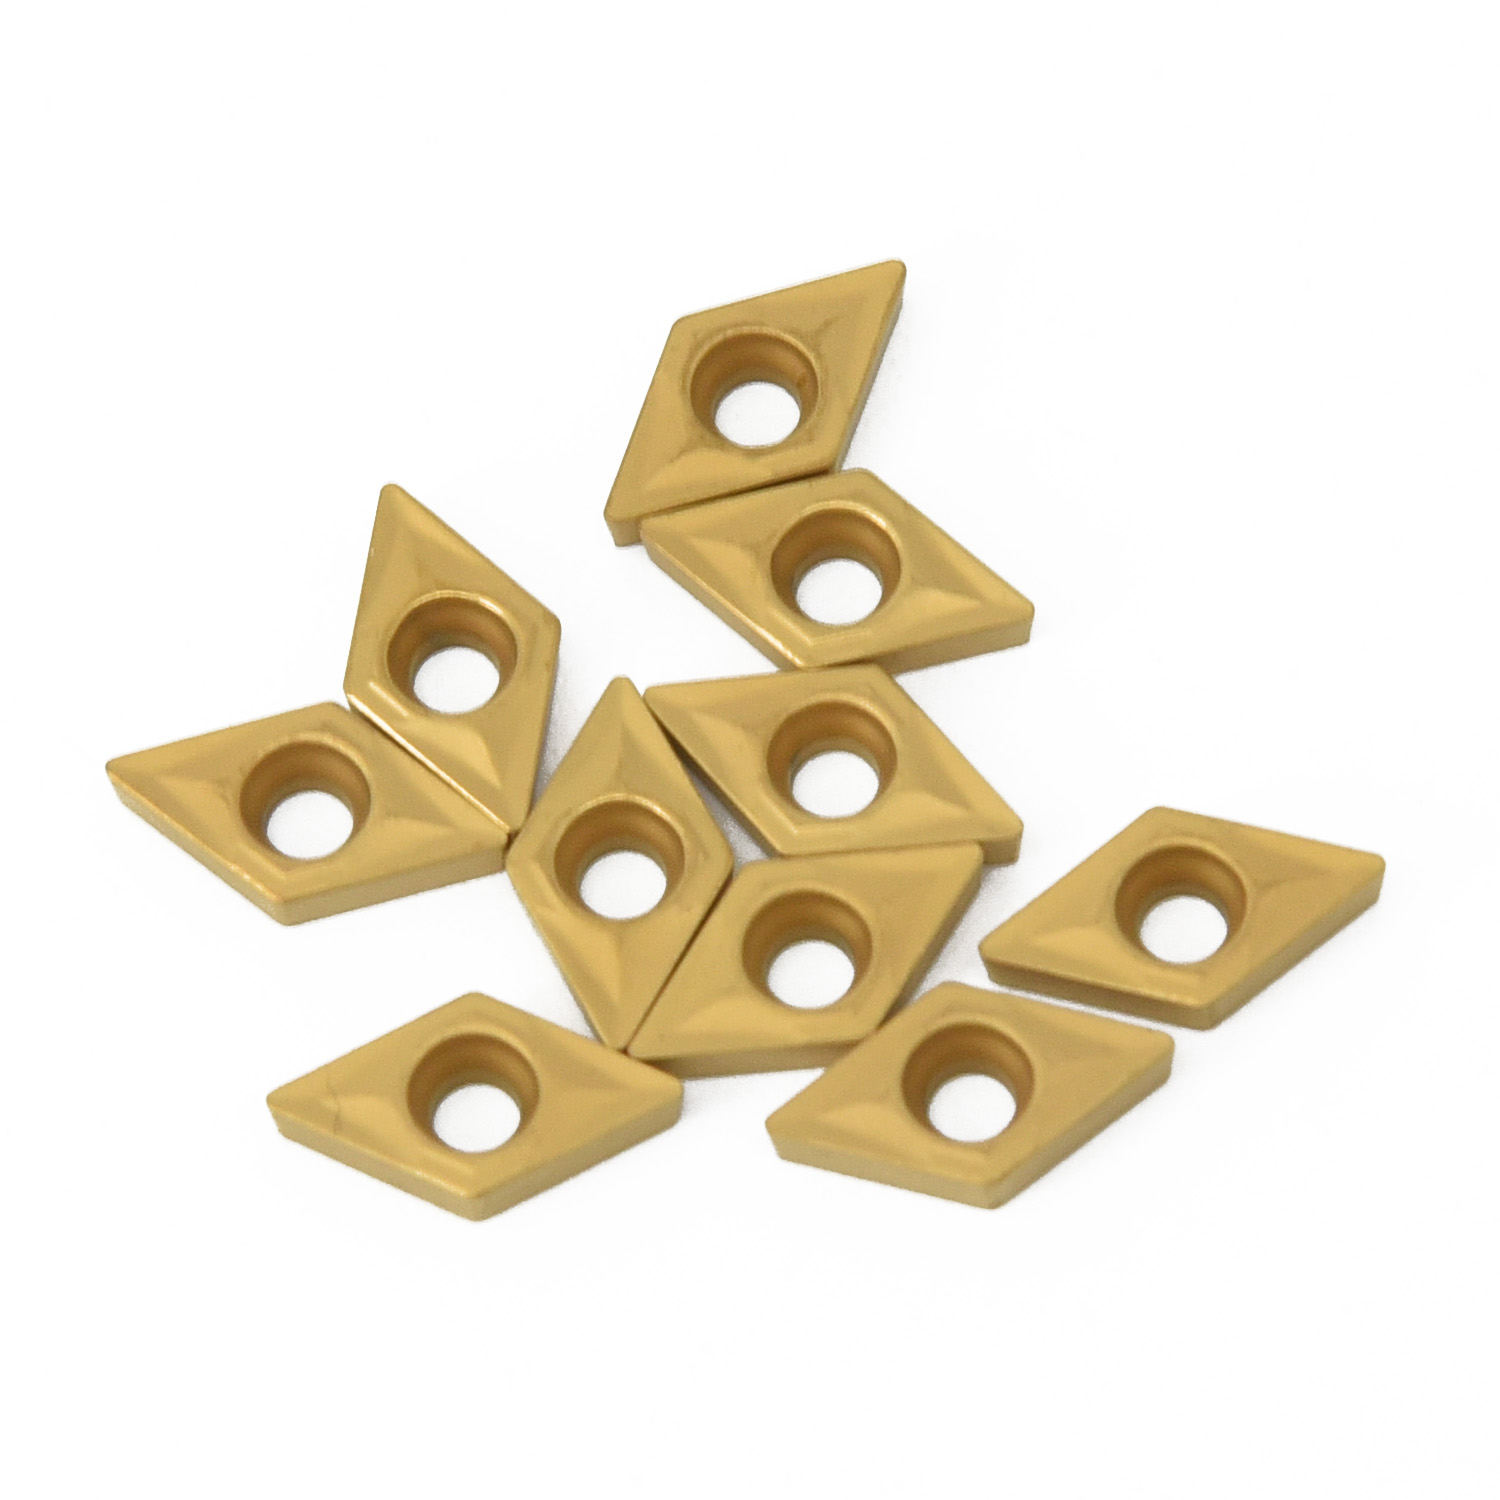 1 Box <font><b>DCMT070204</b></font> US735 DCMT21.51 Carbide Inserts For Lathe Turning Tool <font><b>10</b></font> Pack image